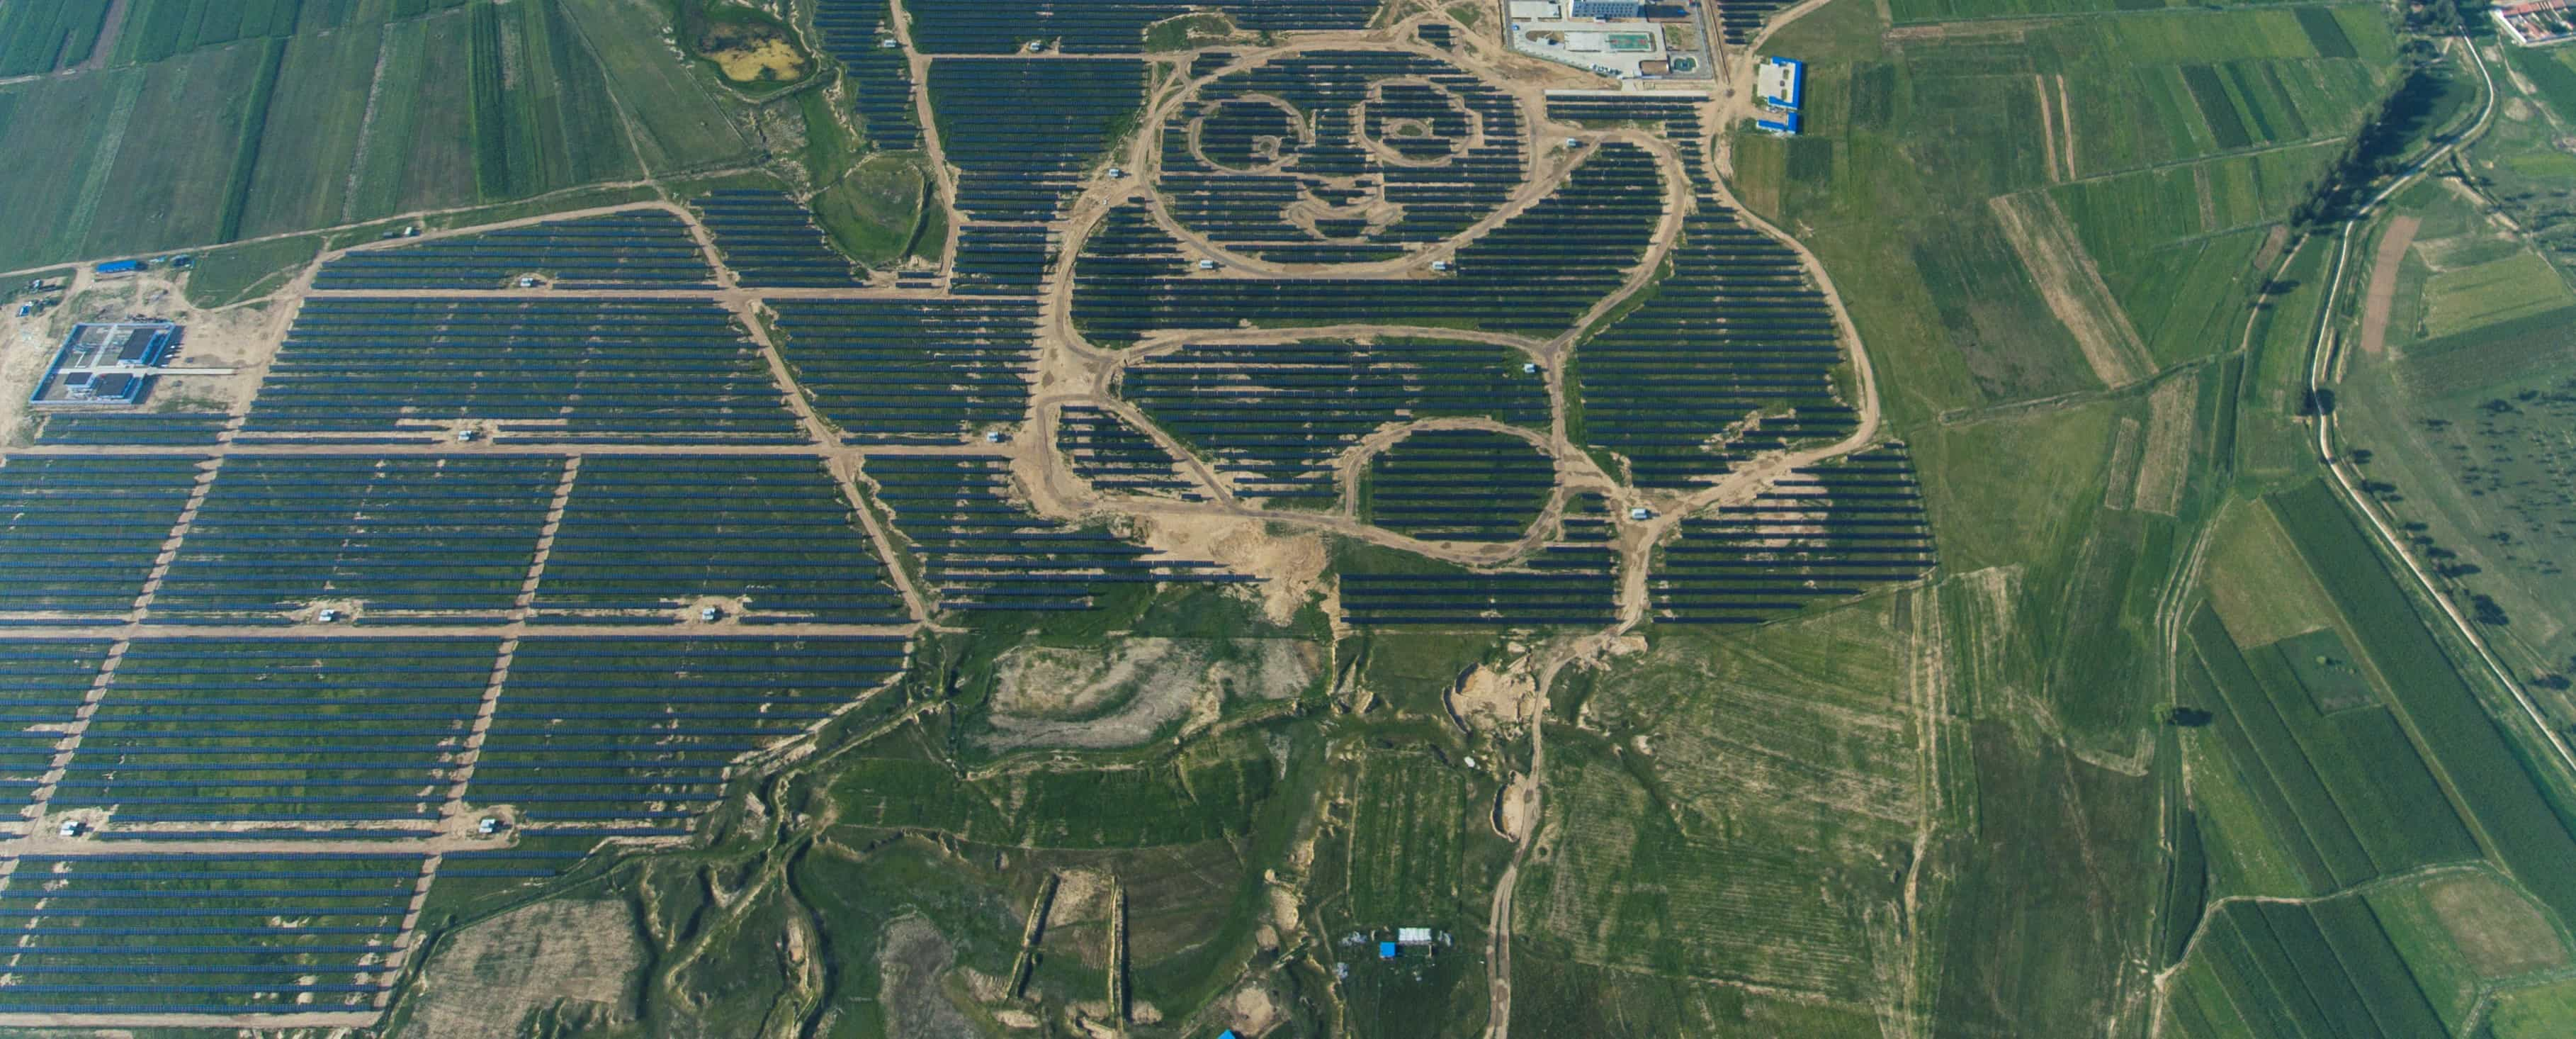 The Panda Solar Station in Datong, China, August 2017 (Photo: VCG/Getty Images)